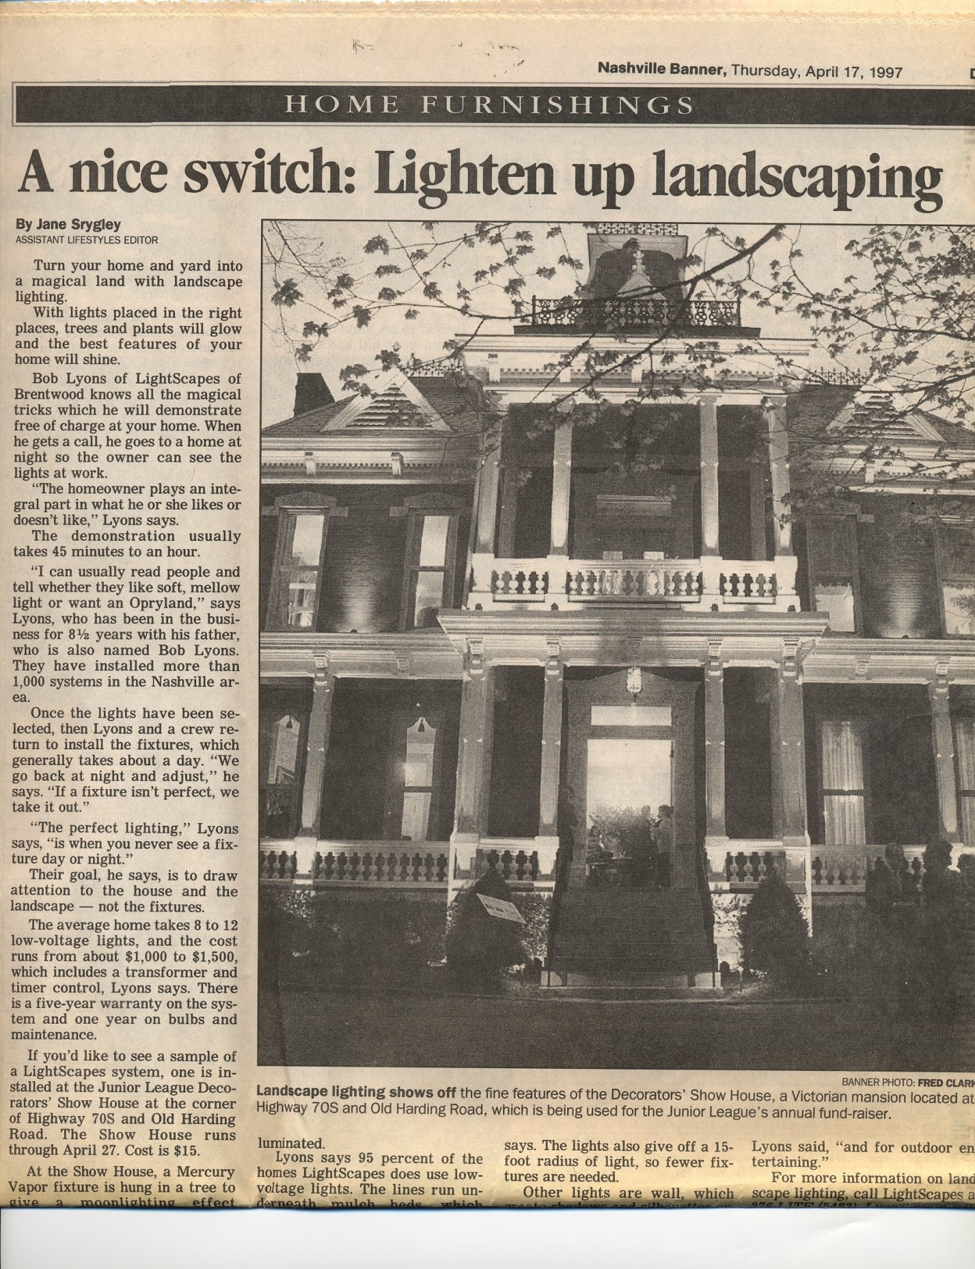 newspaper clipping about outdoor lighting